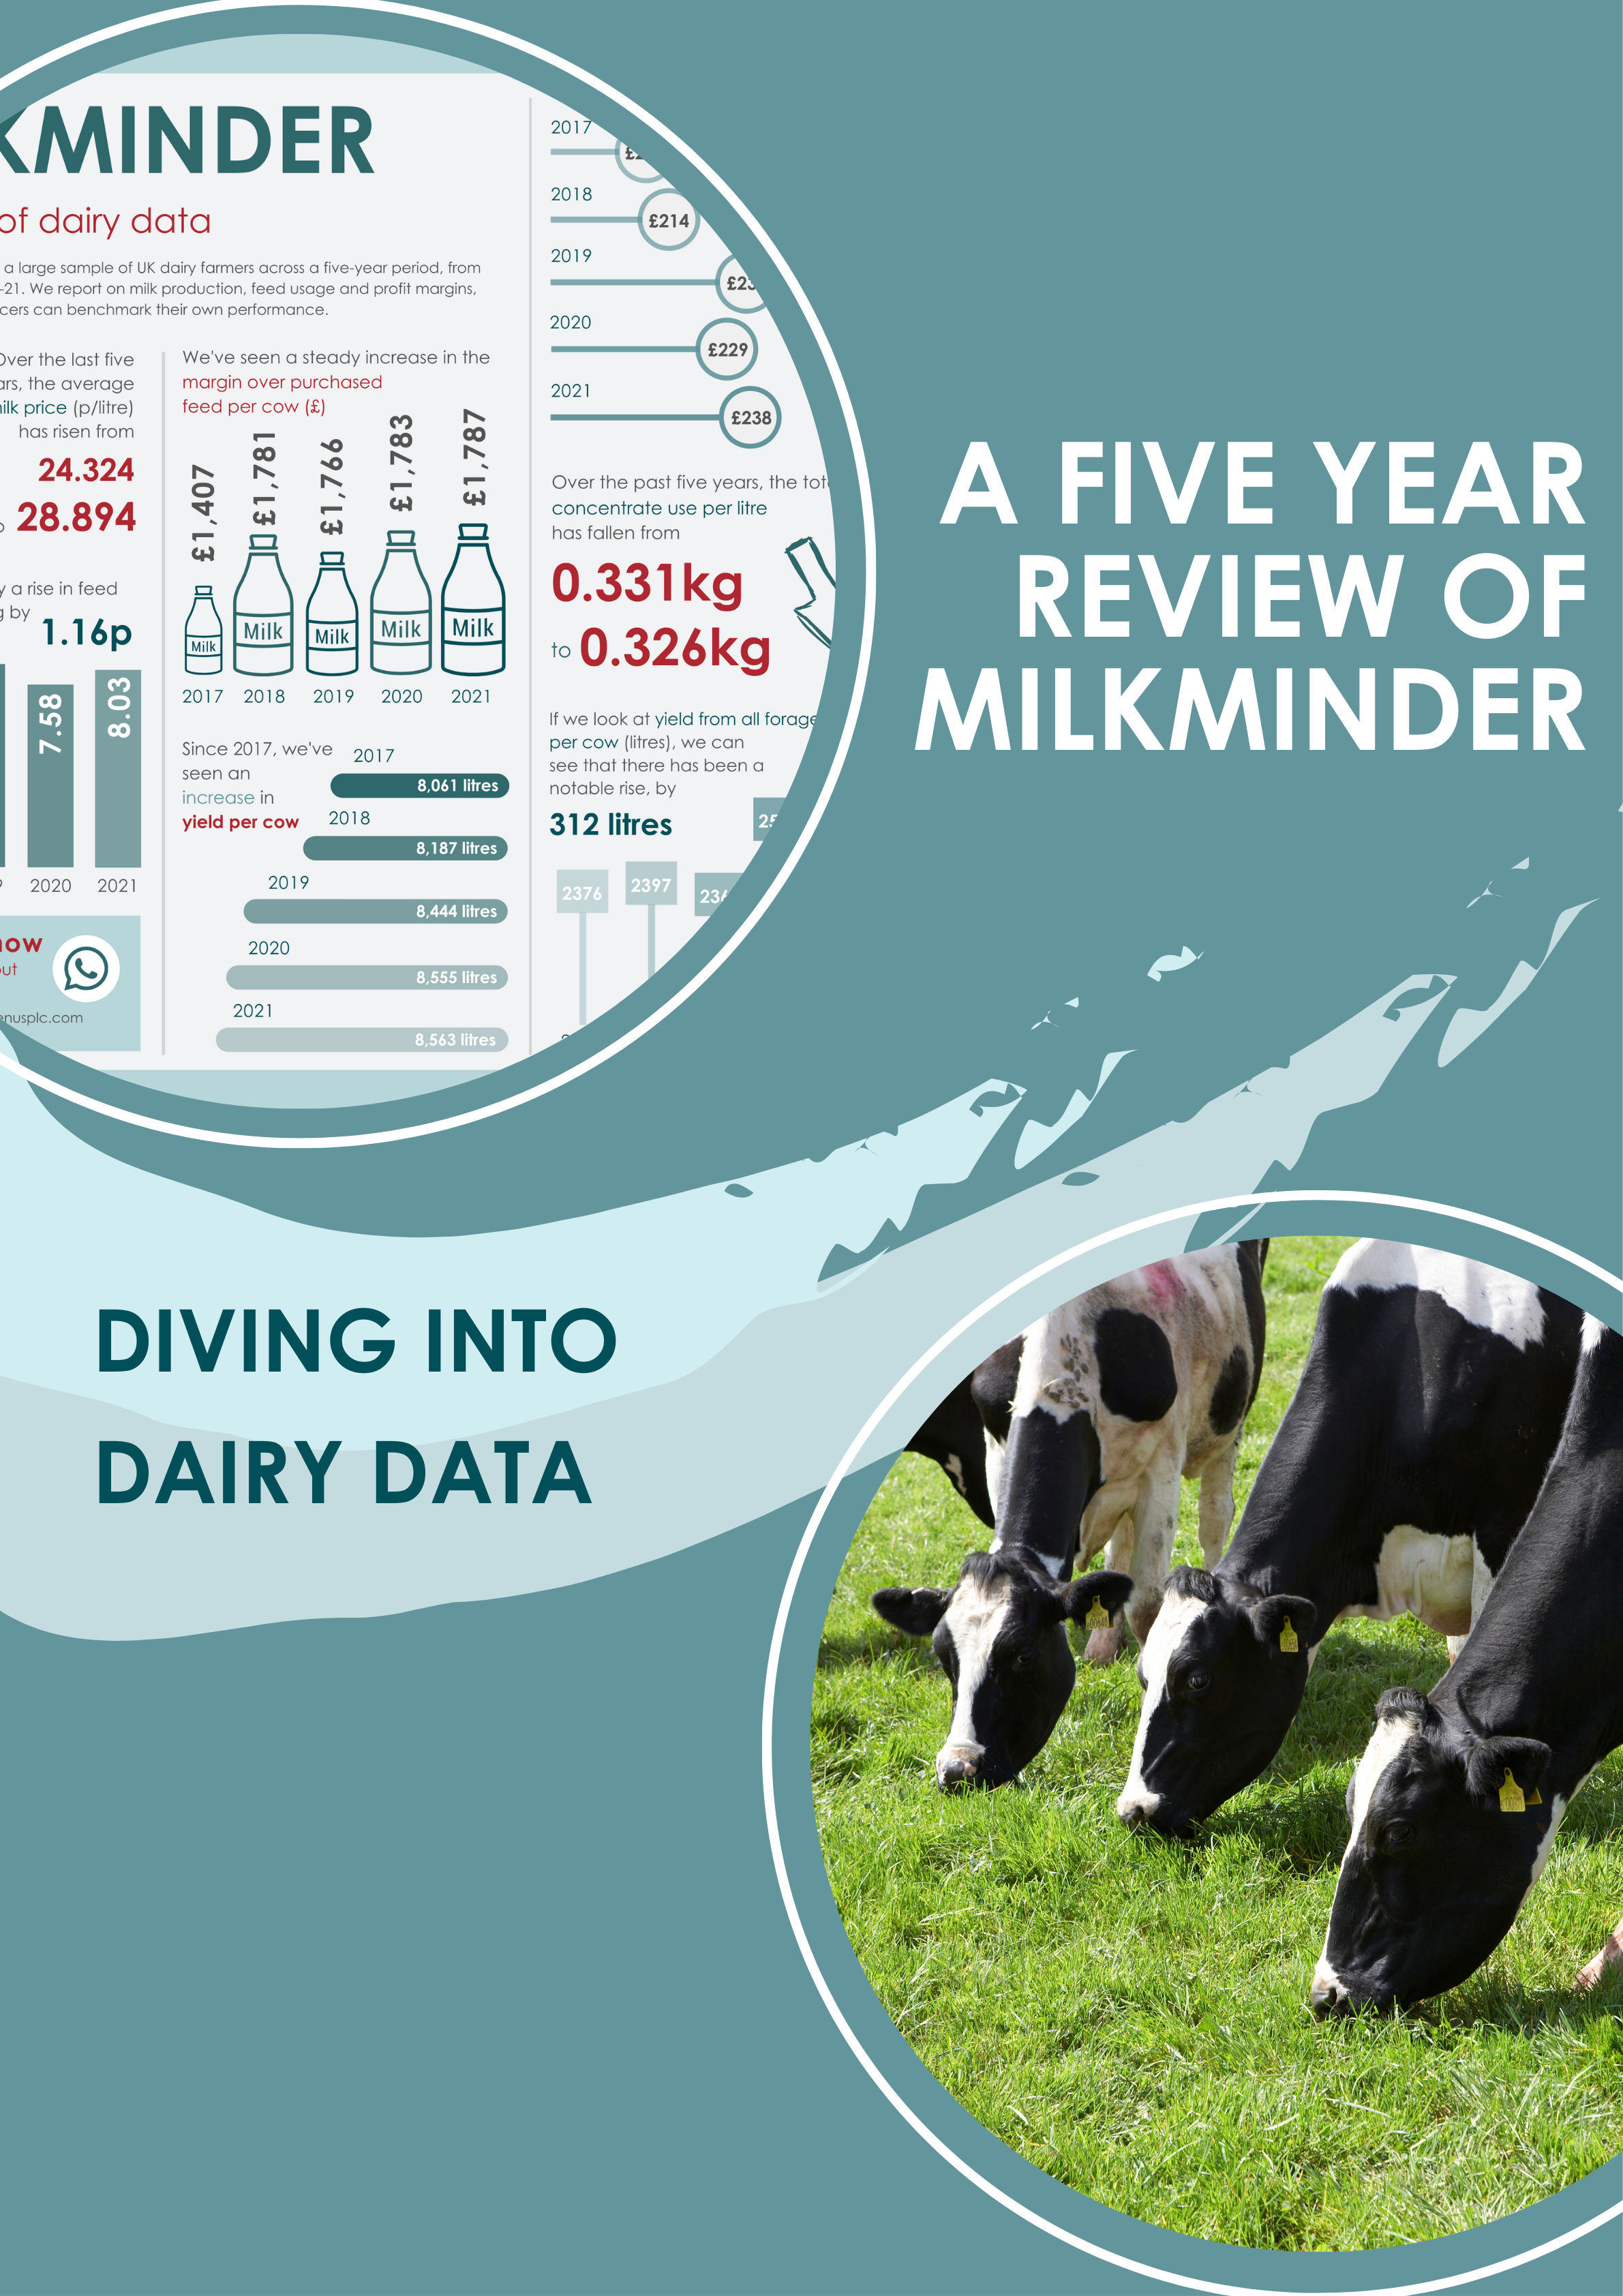 A five year review of Milkminder